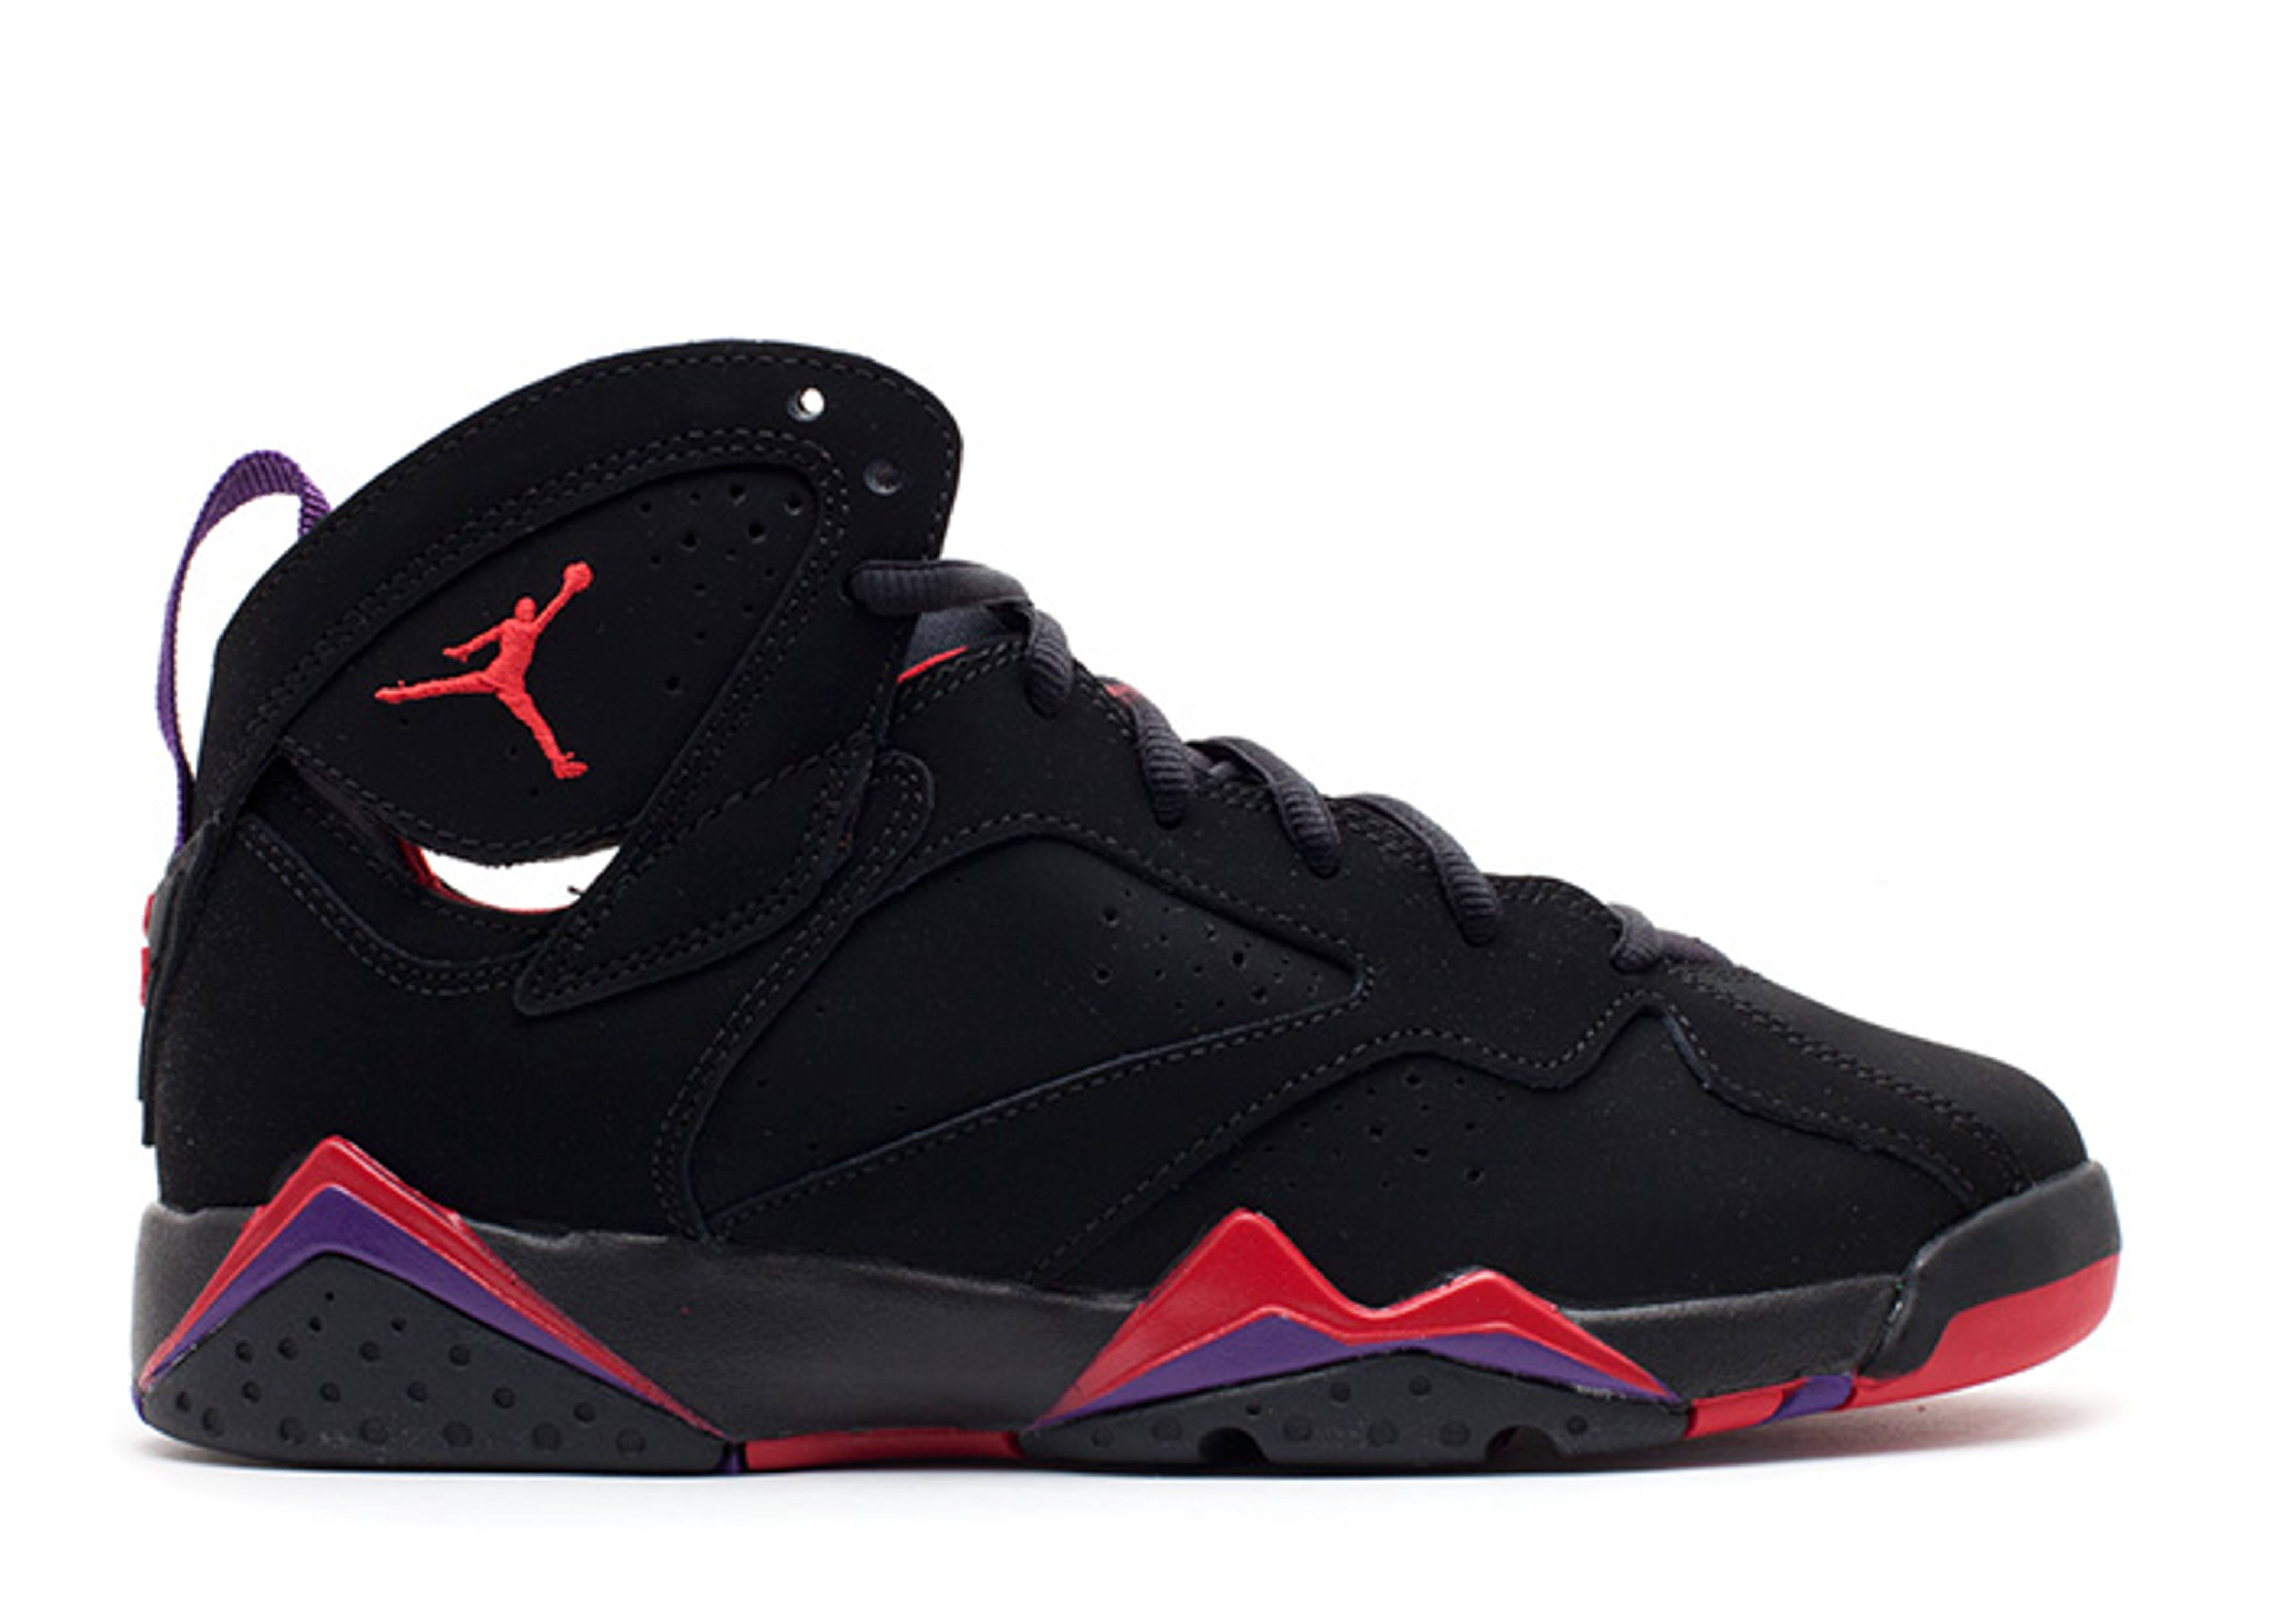 Air Jordan 7 Gs Rapace Rétro excellent dérivatif vente dernières collections magasin discount 2015 nouvelle réduction k6ILI5uH